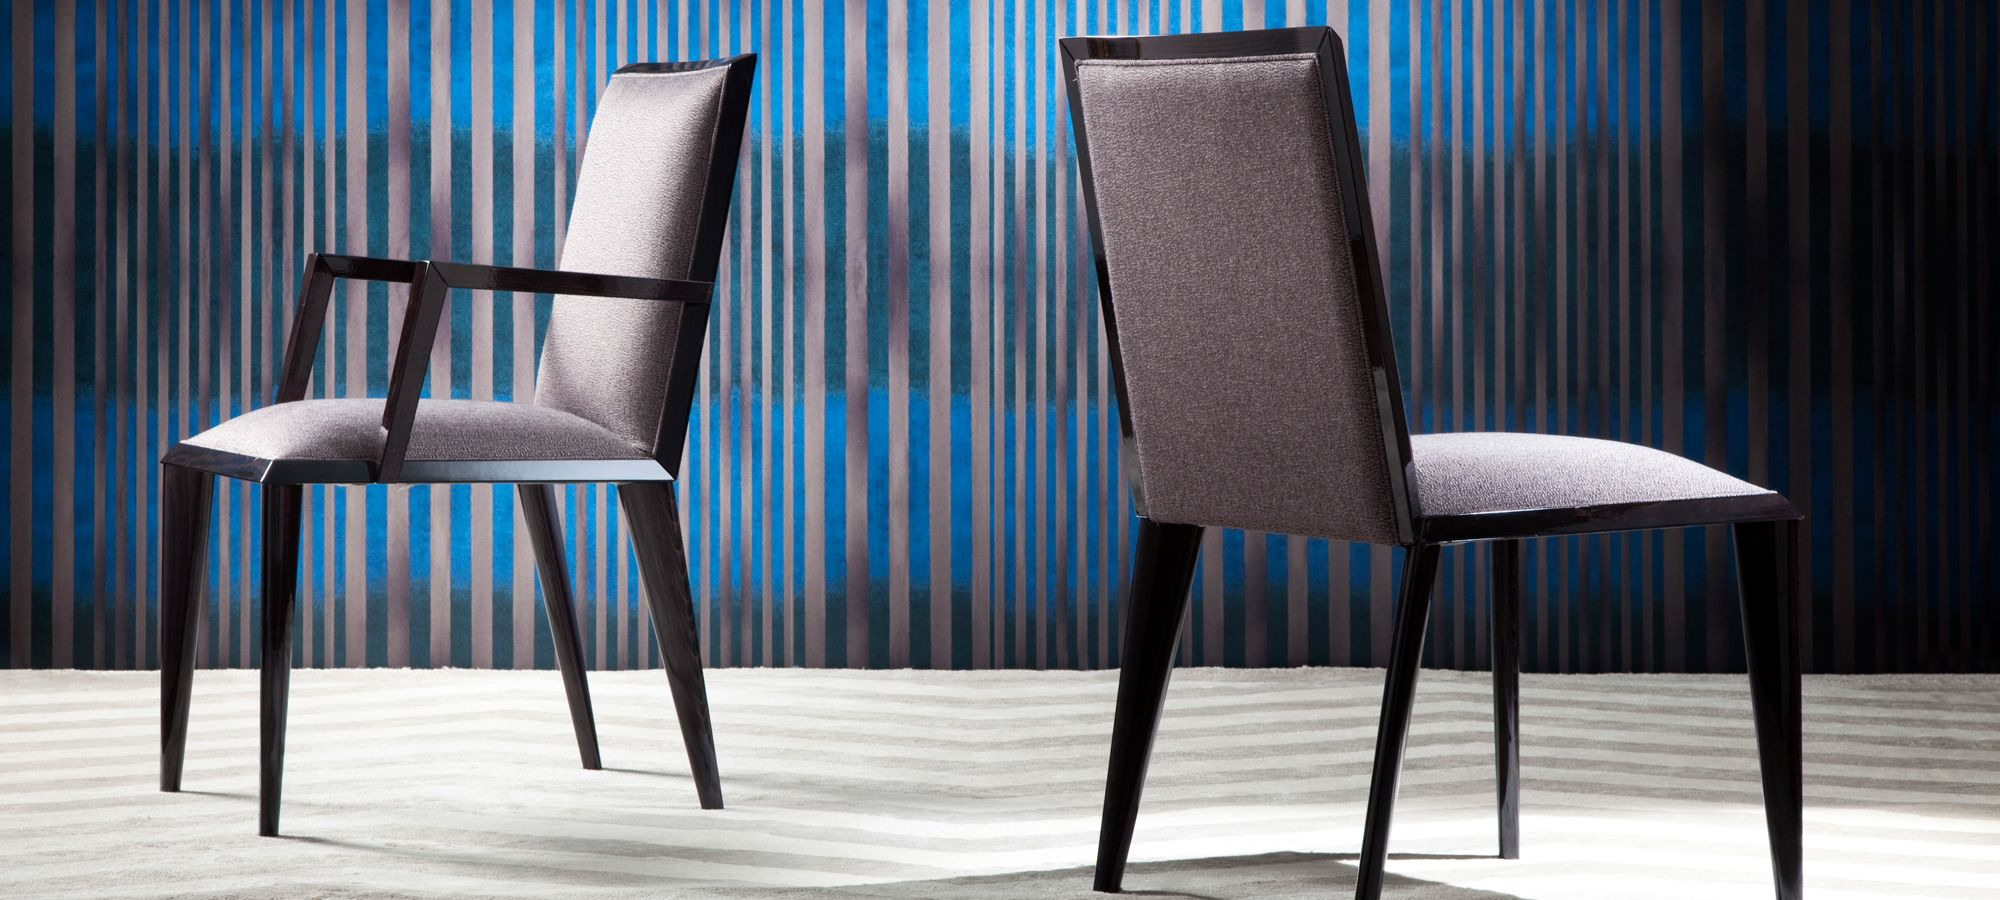 Cody Dining Chair Dining Room Chairs Dining Room Chairs